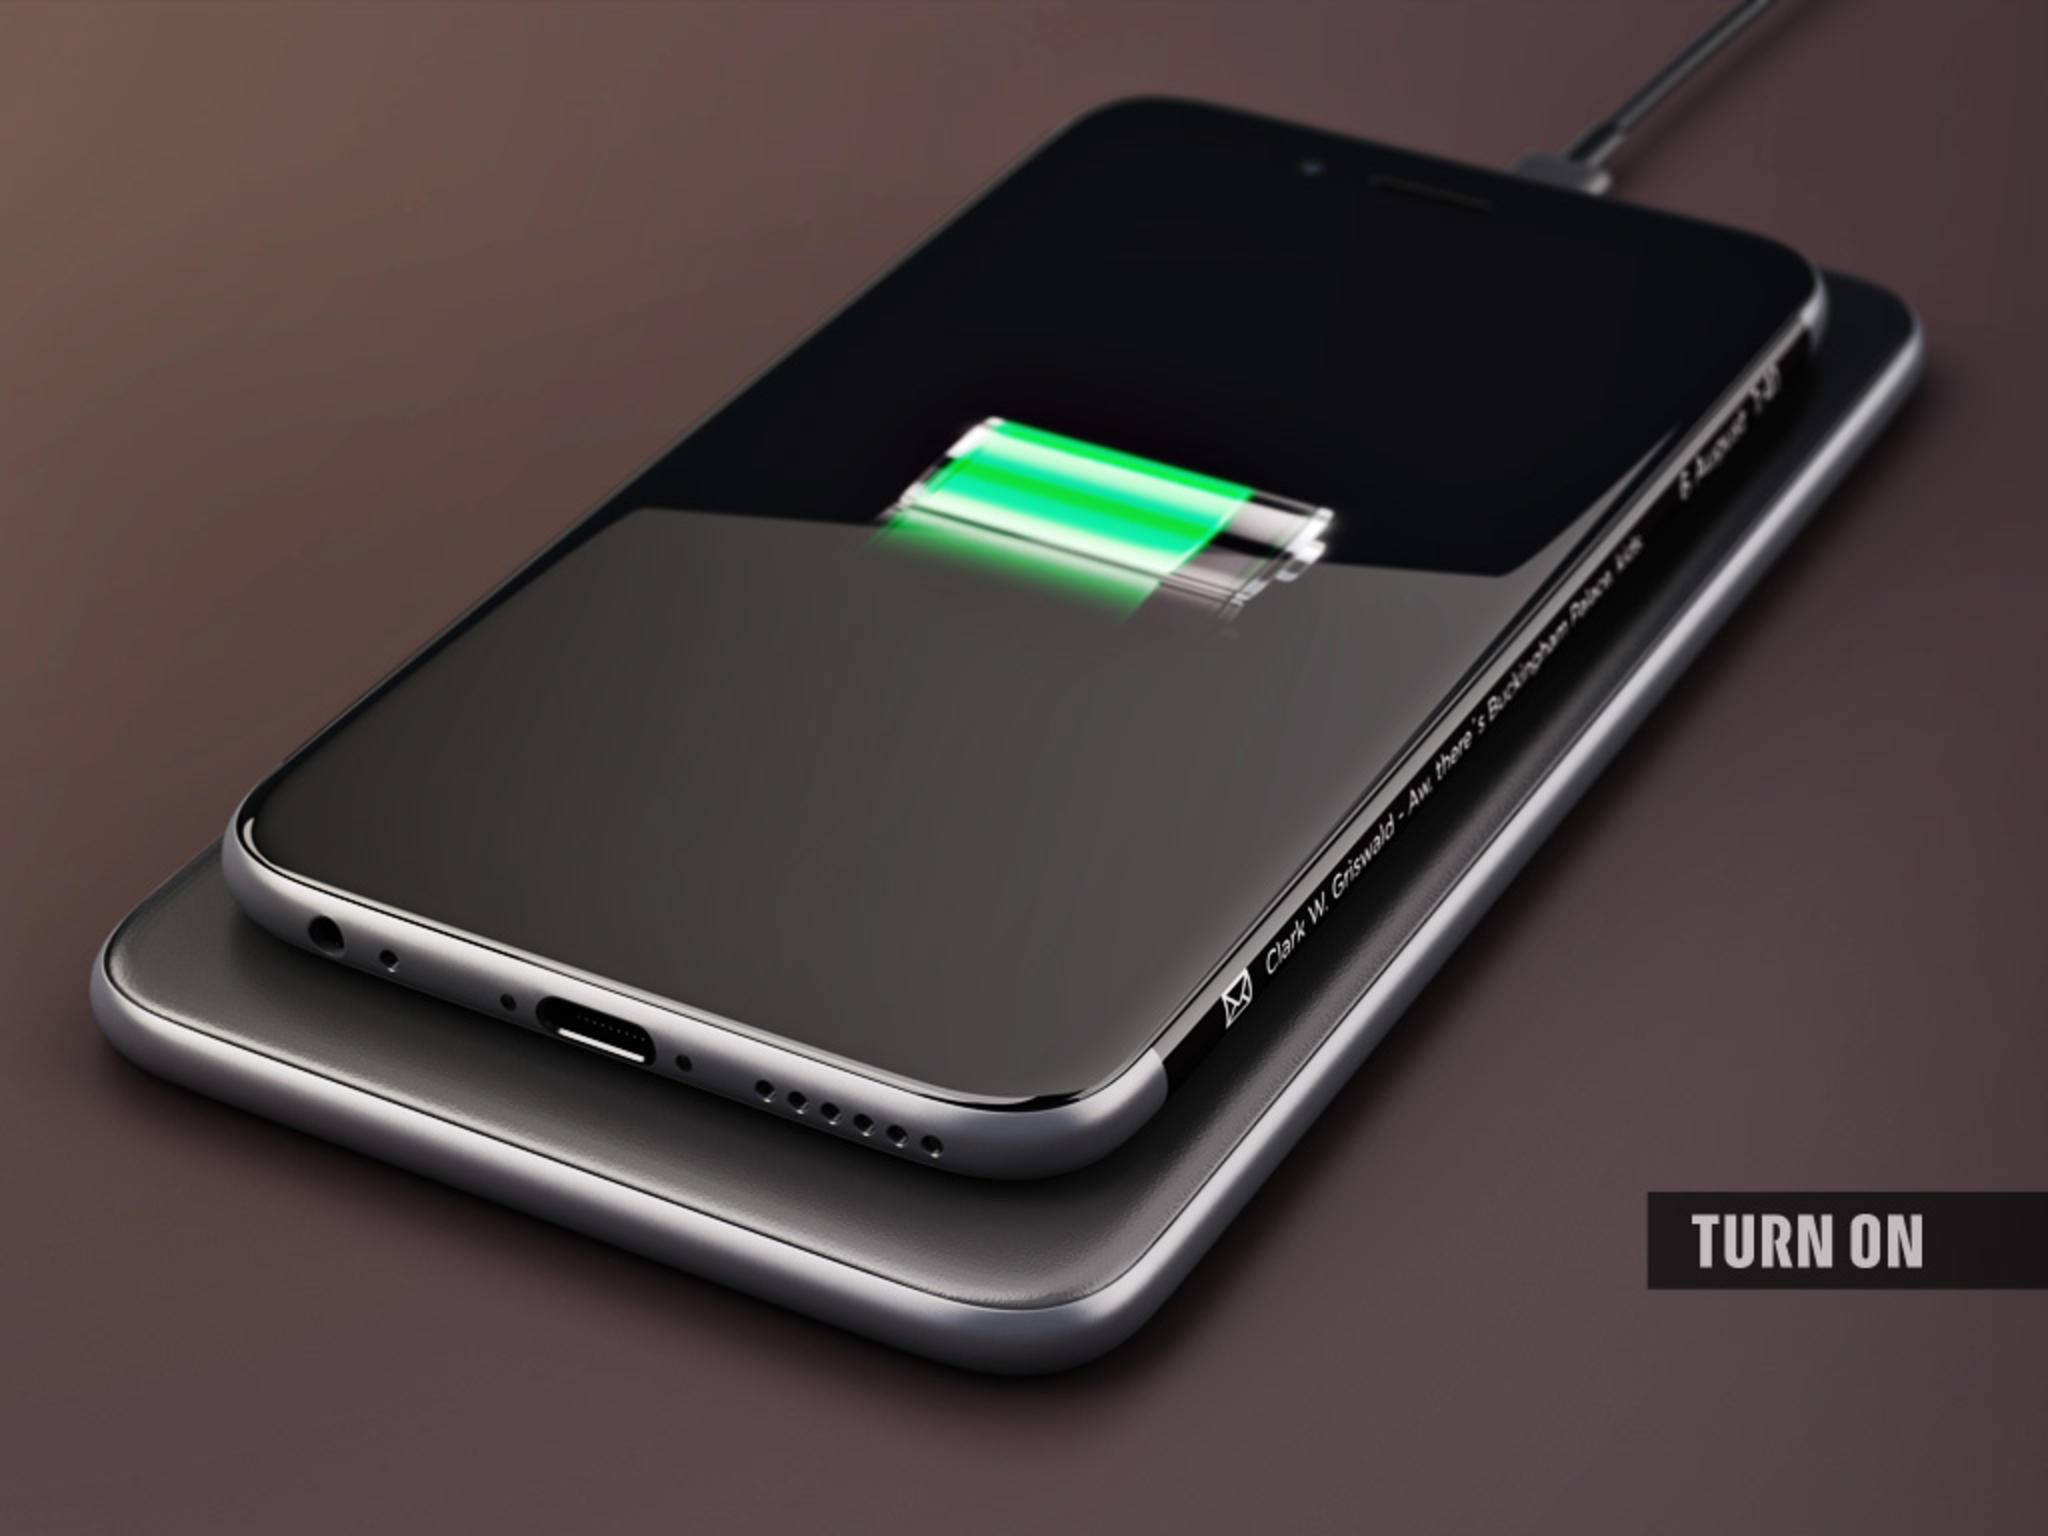 The metal body would allow for wireless charging.